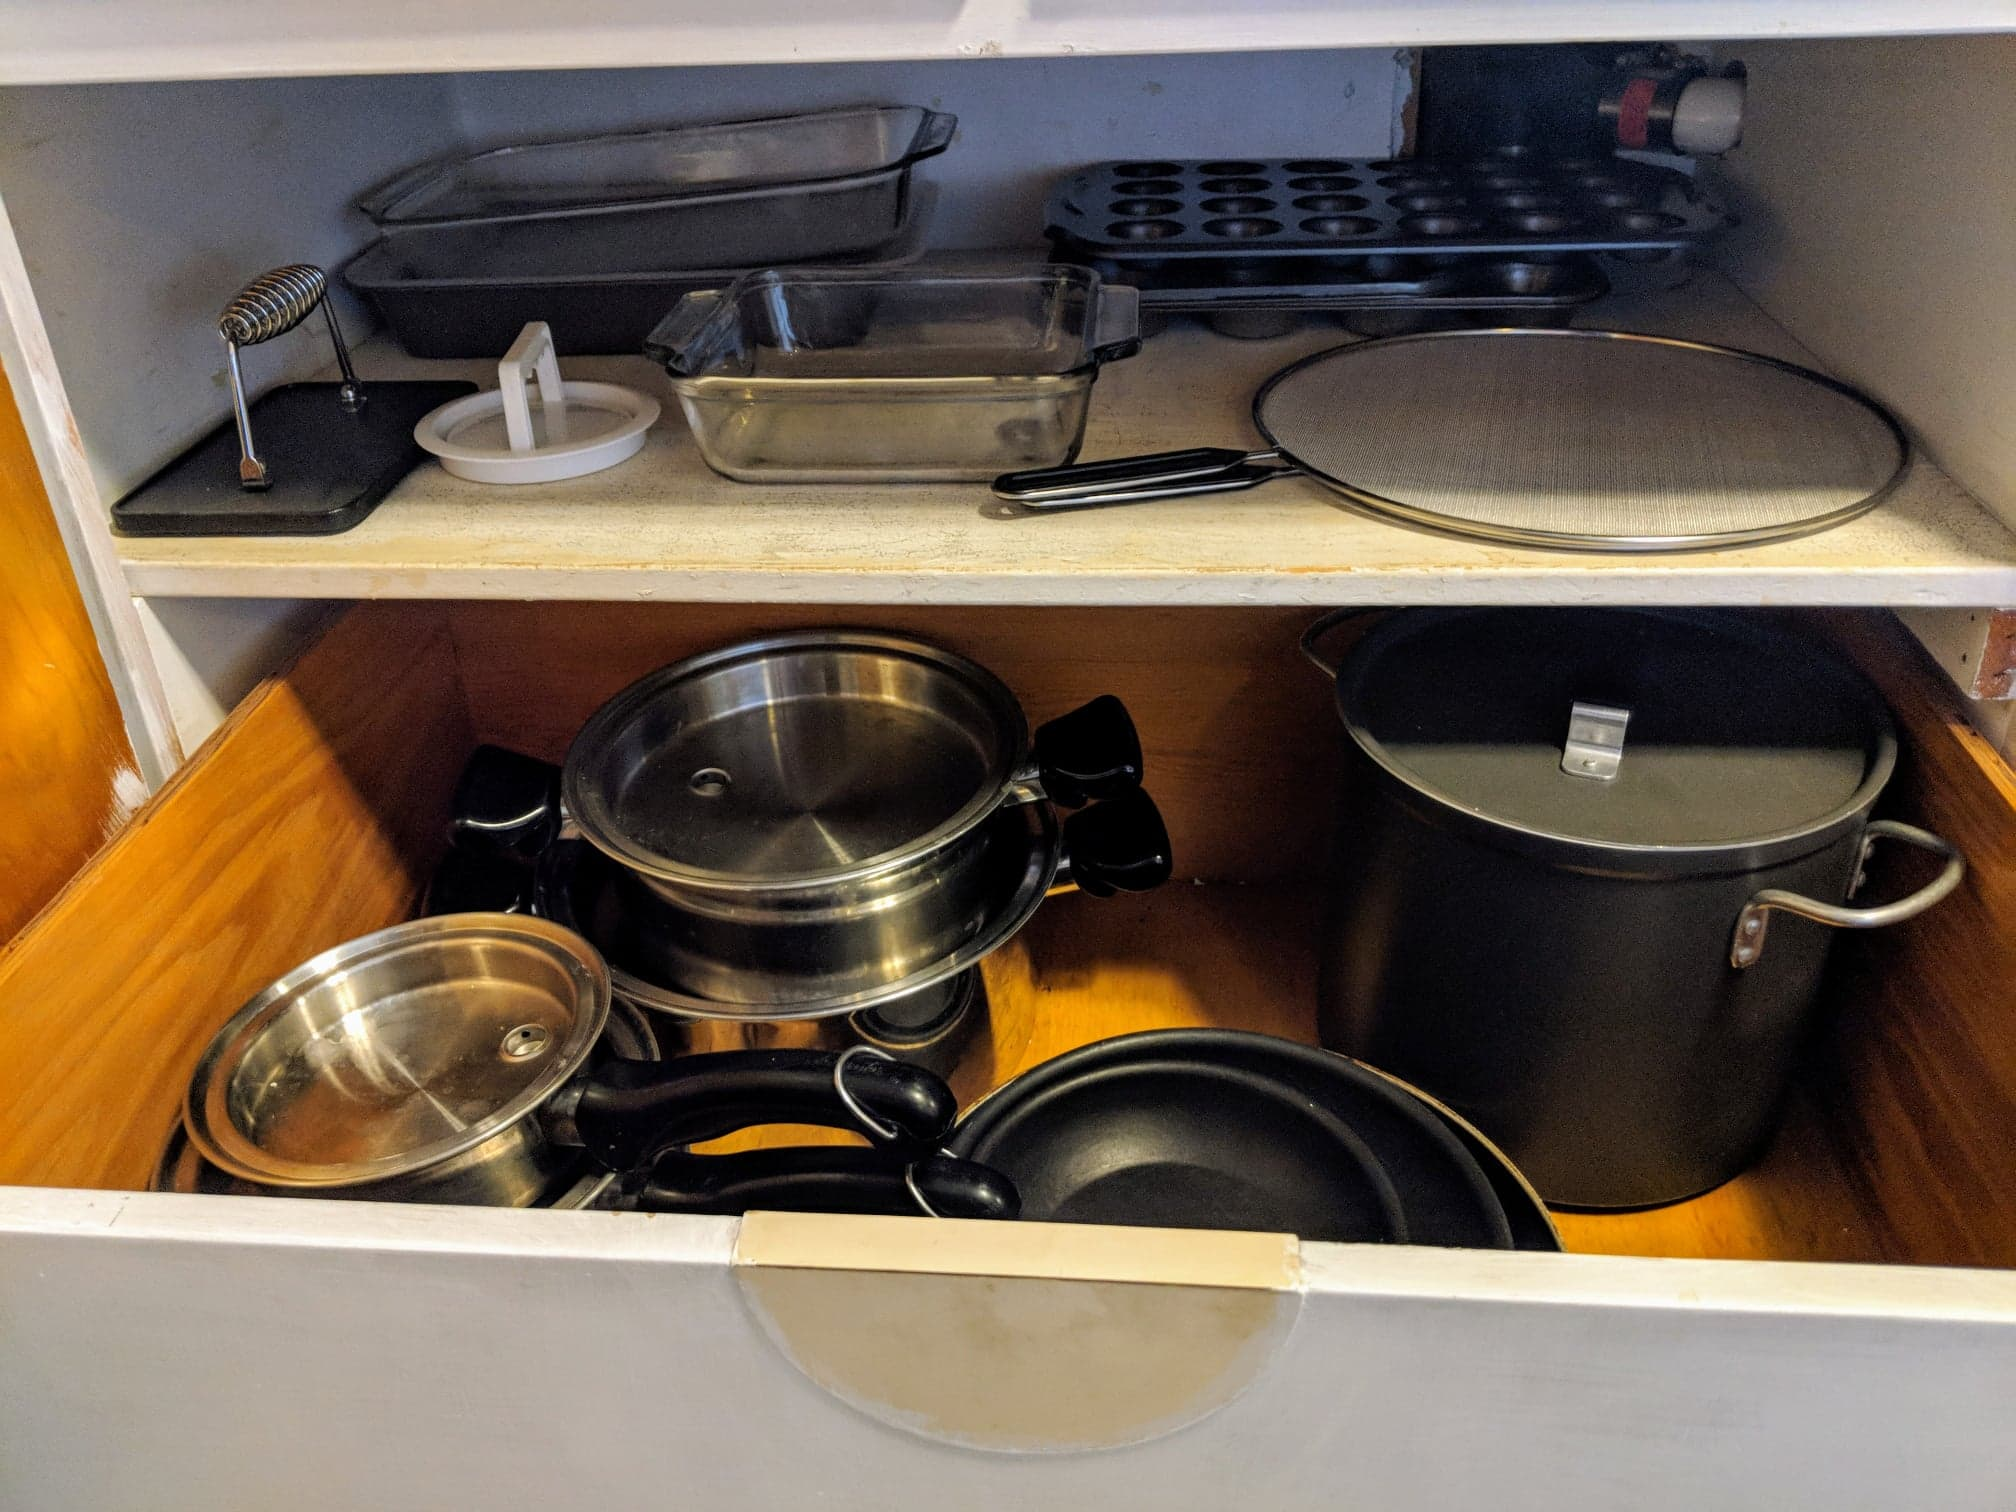 I can probably go through my pots and pans again, since i still seem to have so many